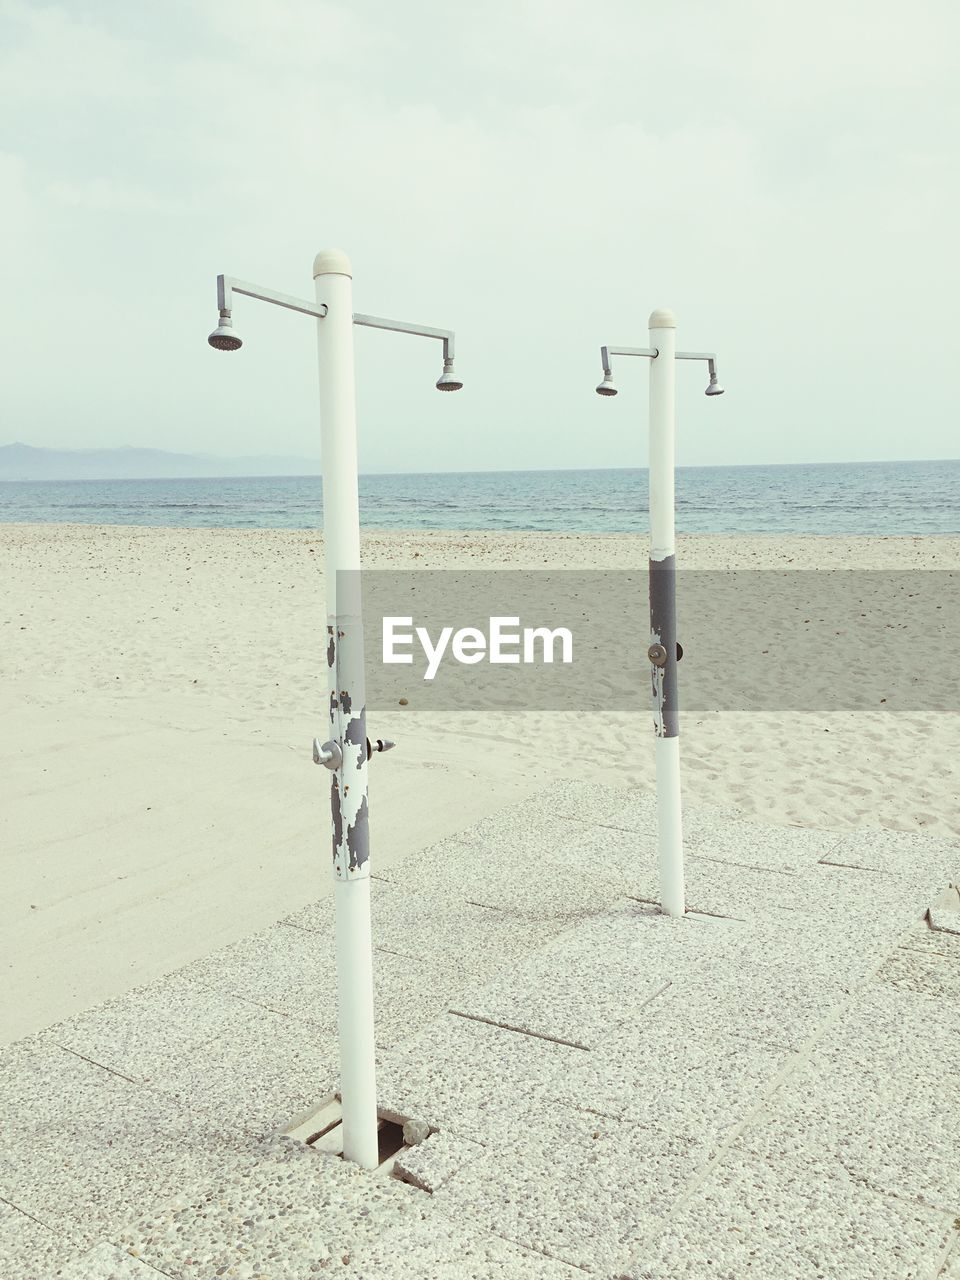 water, sea, beach, day, horizon over water, nature, safety, sky, scenics, beauty in nature, no people, sand, outdoors, tranquility, coin-operated binoculars, close-up